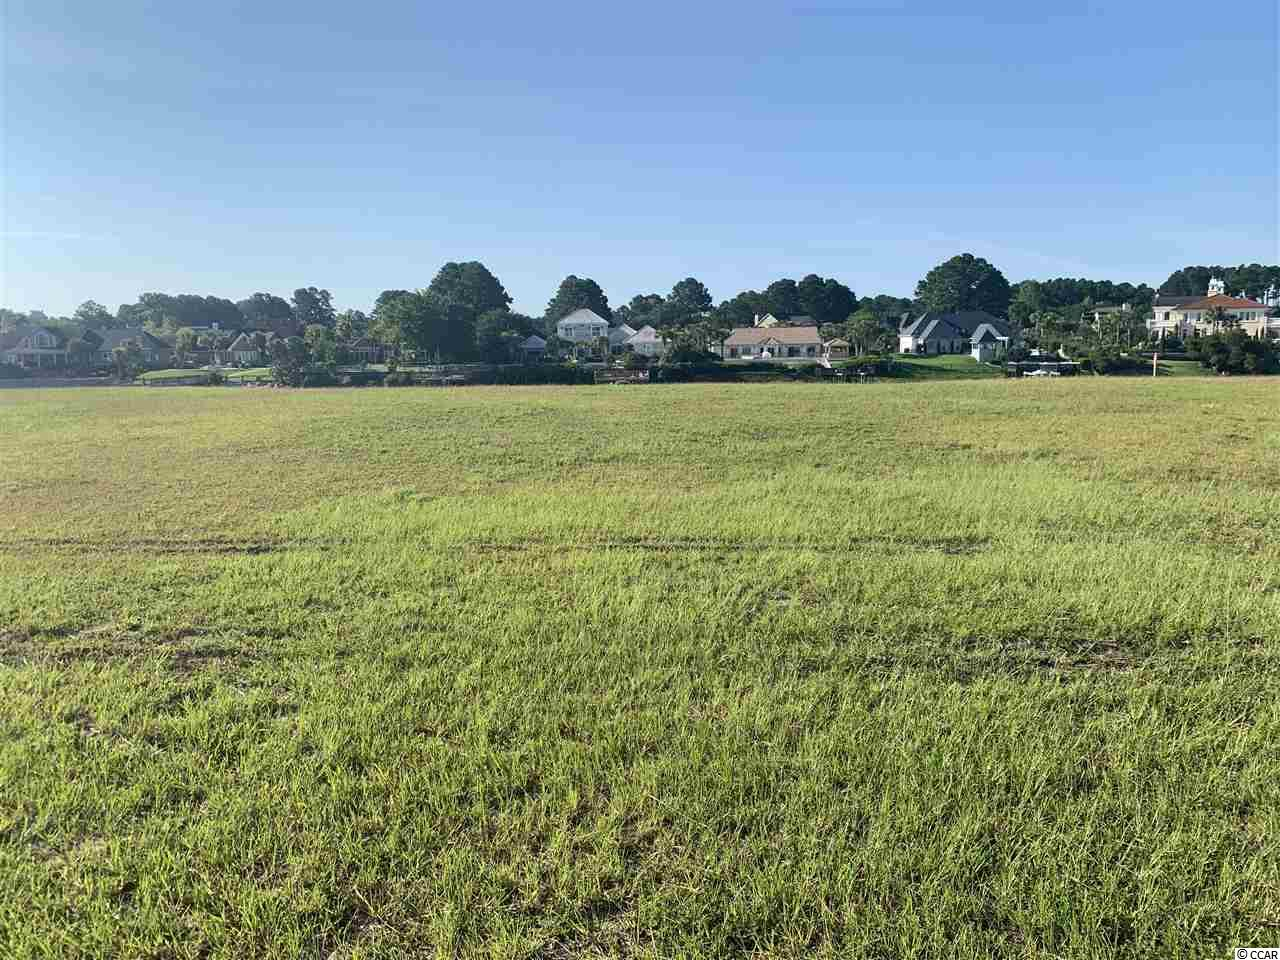 Start living your dream today.  This Large waterway lot that is ready for you to build your dream house.  Bulkhead is already in place.  Highly desired gated Carolina Waterway Plantation offers furnished clubhouse with kitchen and banquet room, outside grill, pool, kids playground, gazebo, tennis court, walking trails, boat ramp, storage for RV and boats . Carolina Forest area offers award-winning schools, grocery stores, medical facilities, recreational centers, library ,religious centers,bike park. Buy now and start experiencing relaxing natures beauty with extraordinary sunrises ,sunsets and water views in Carolina Waterway Plantation.